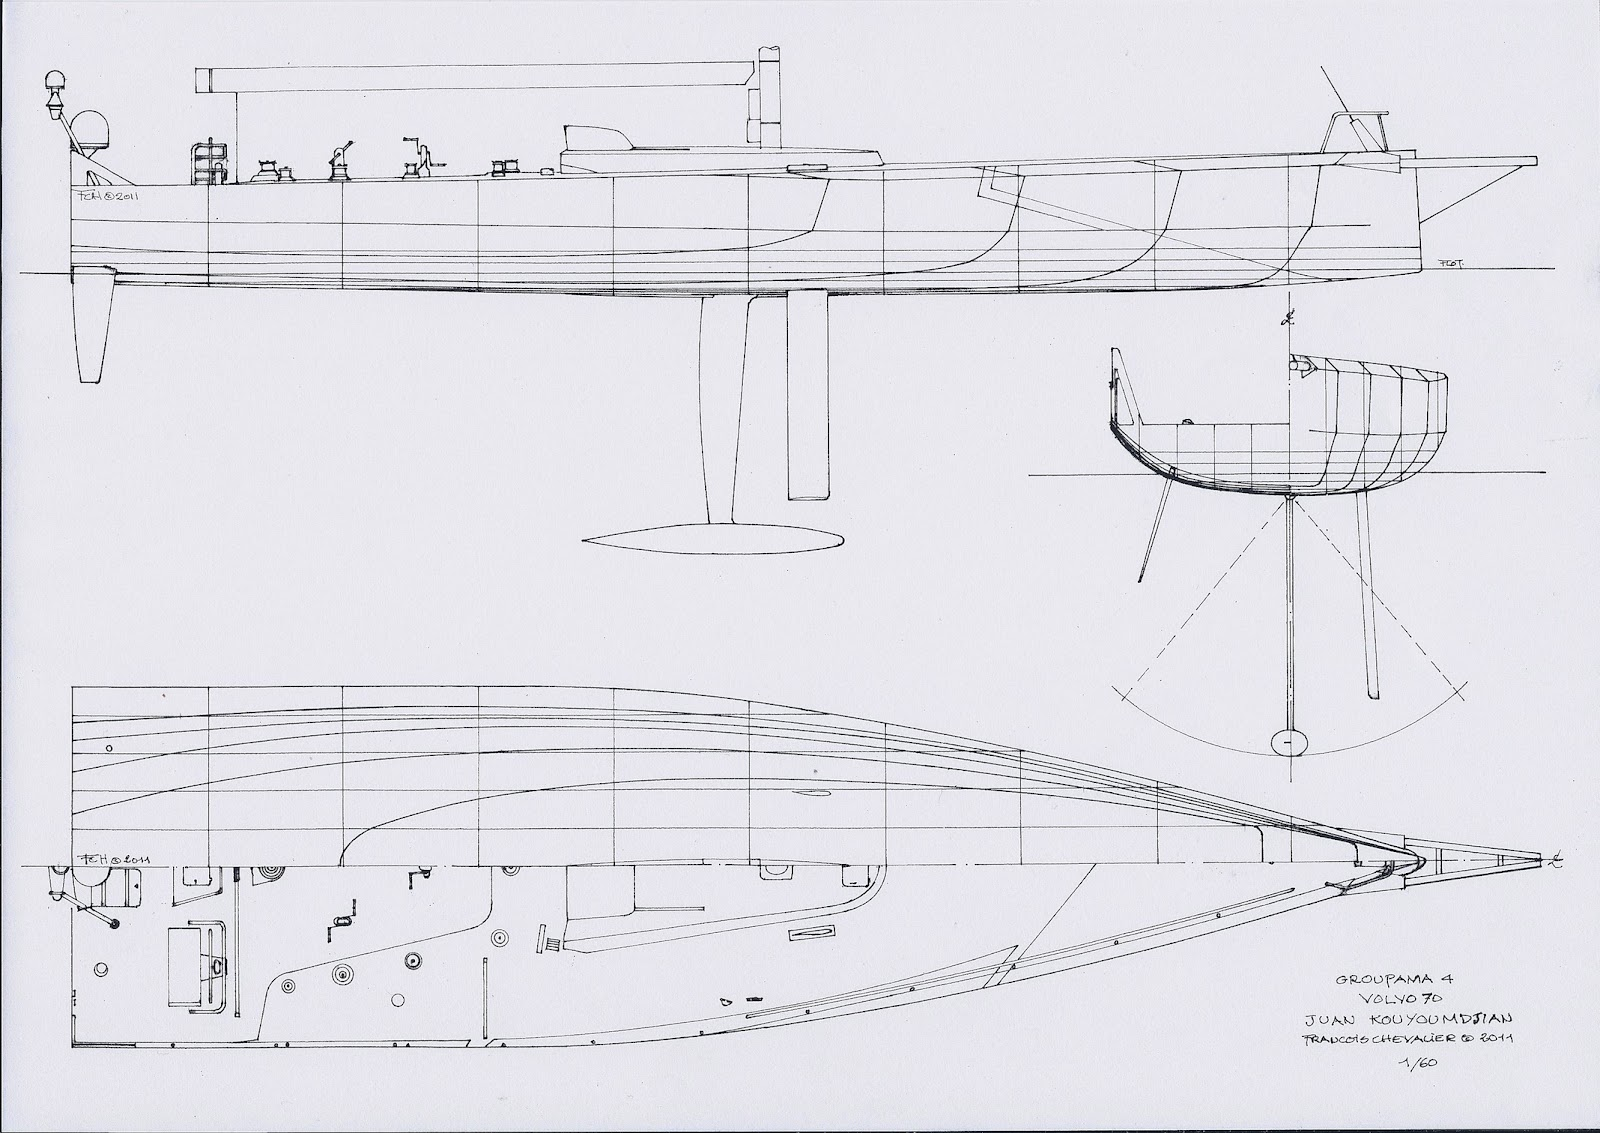 chevalier taglang volvo ocean race drawings and design evolution updated 2014 volvo one design [ 1600 x 1133 Pixel ]